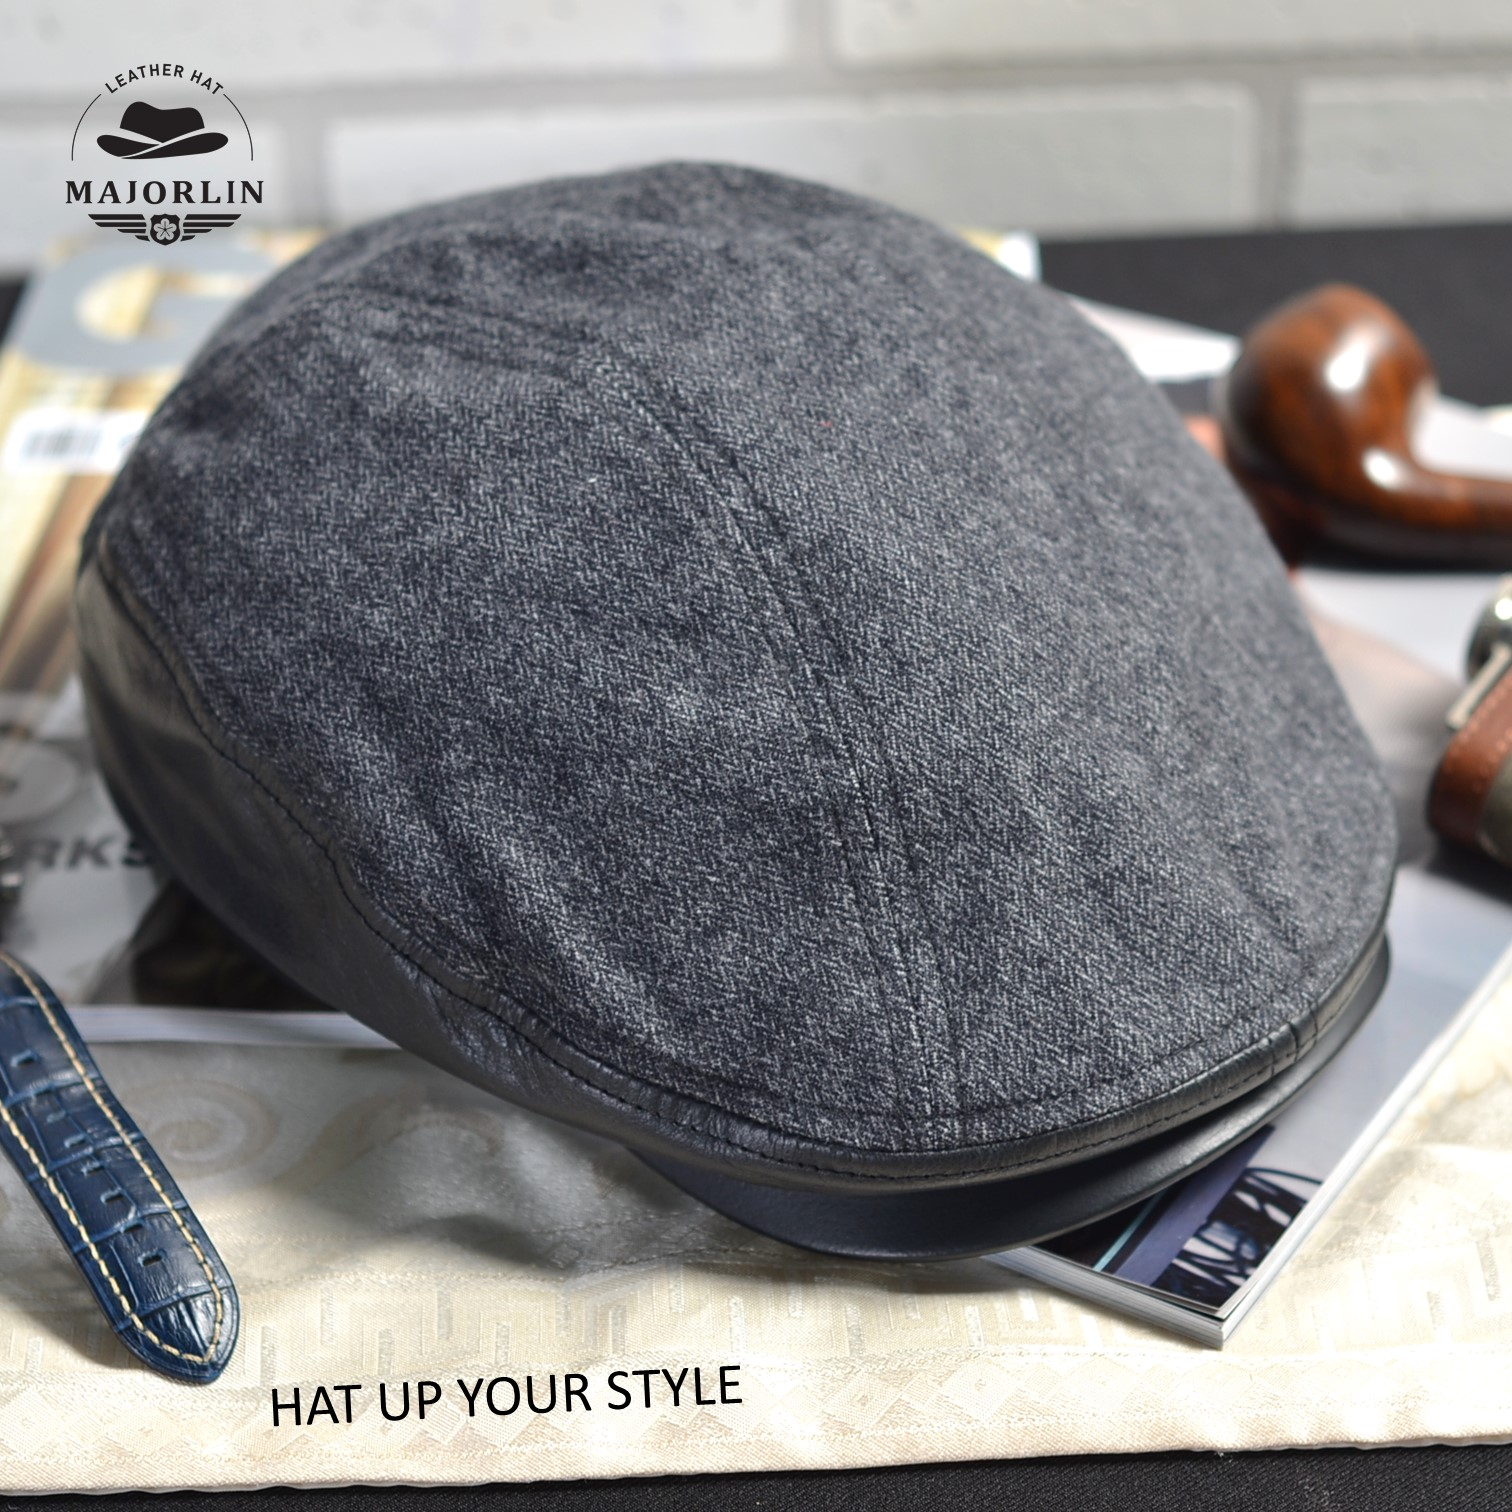 MAJORLIN newsboy cap